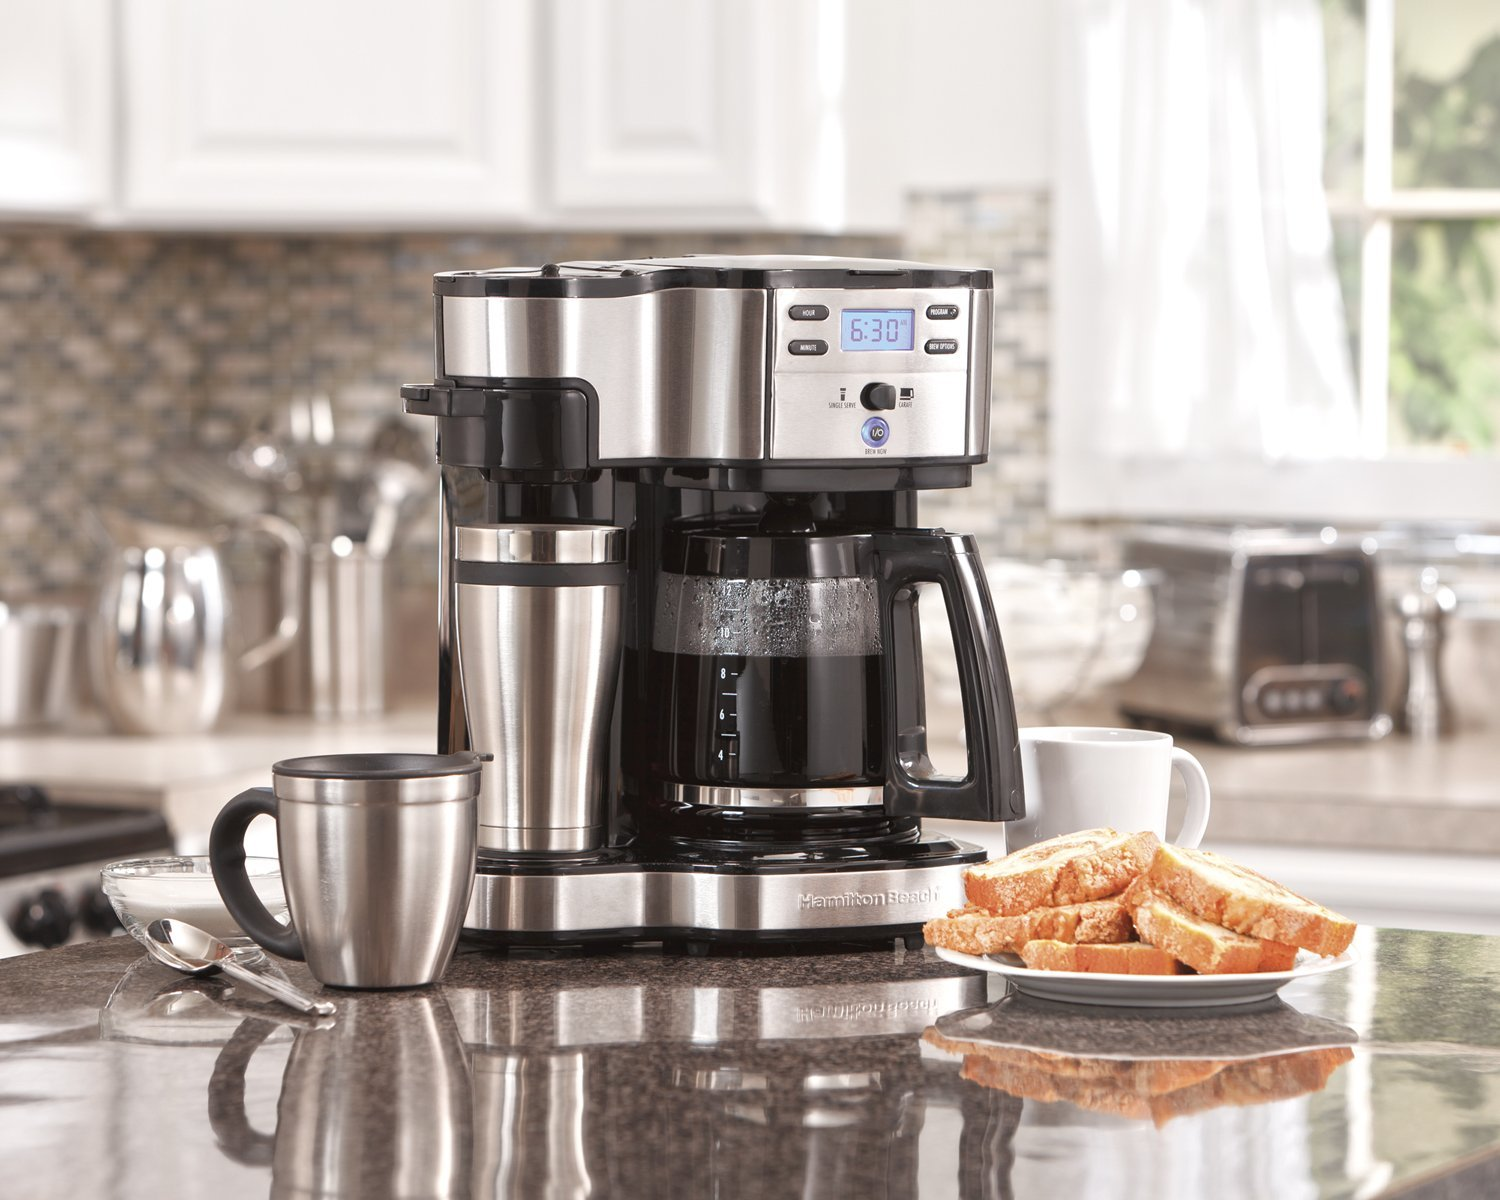 Hamilton Beach (49980A) Single Serve Coffee Maker and Coffee Pot Maker, Programmable, Black/Stainless Steel (Renewed) by Hamilton Beach (Image #2)